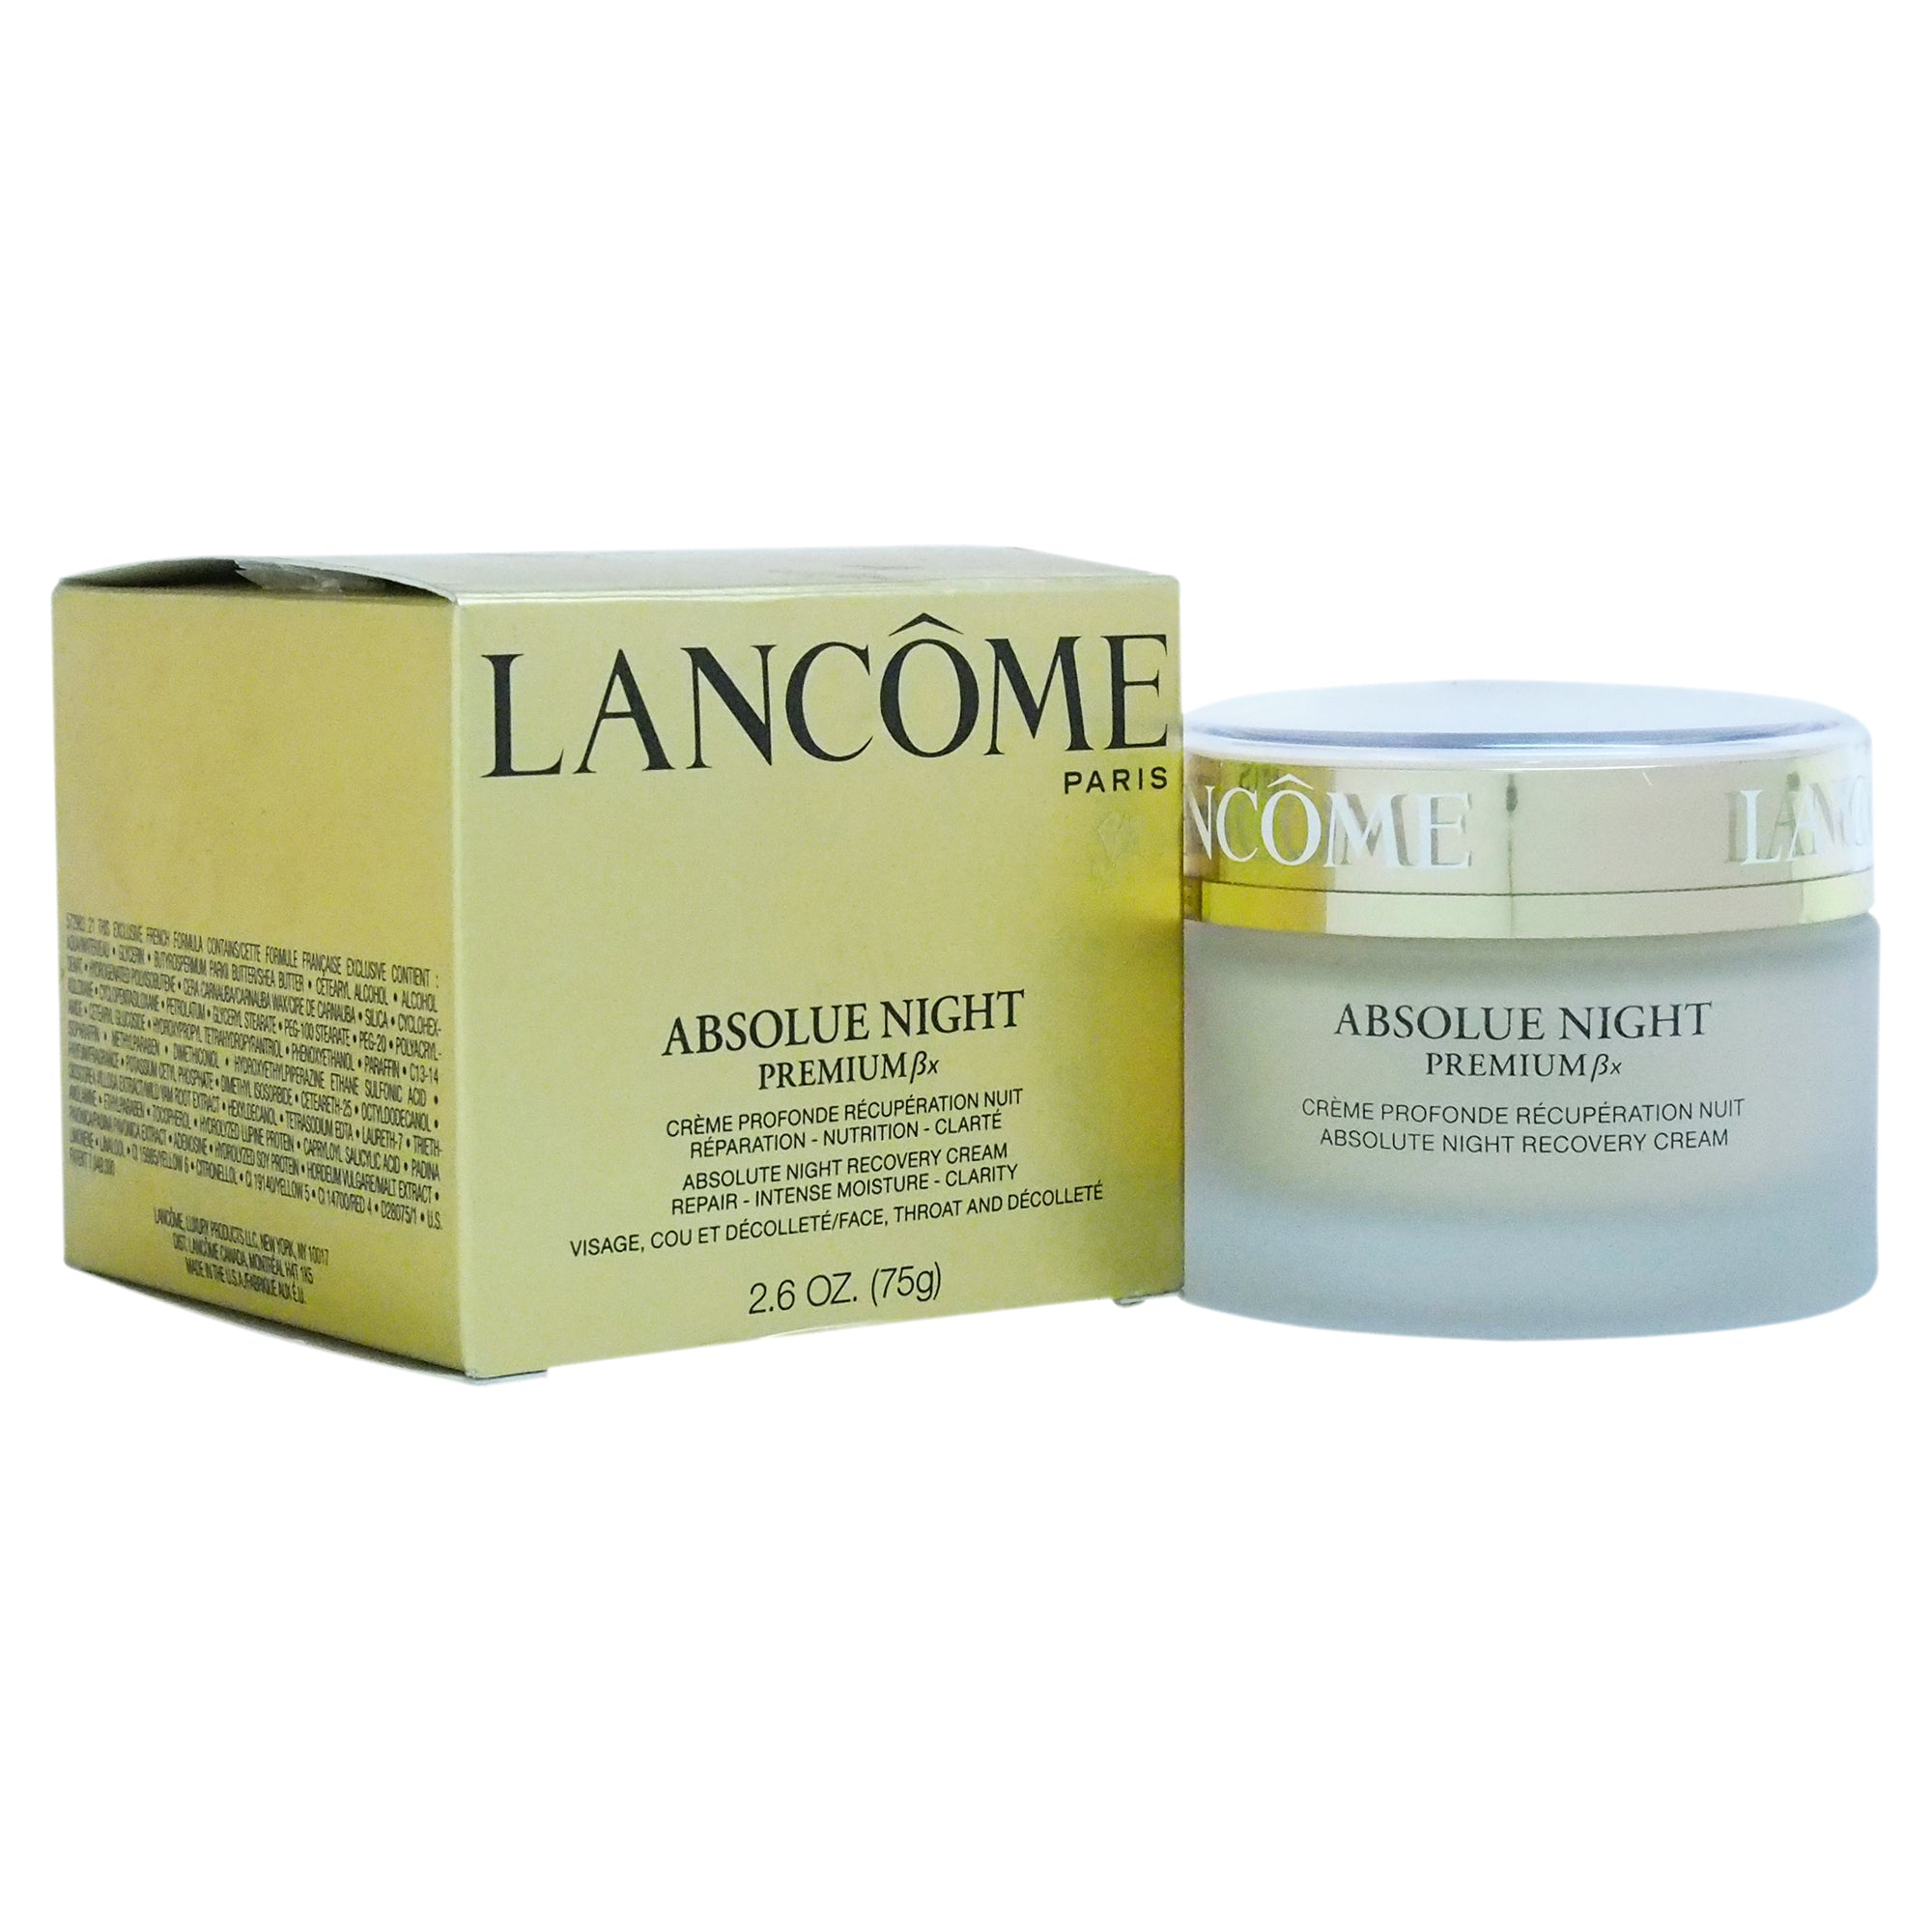 Lancome Absolue Night Premium Bx Absolute Night Recovery Cream (Made In USA)